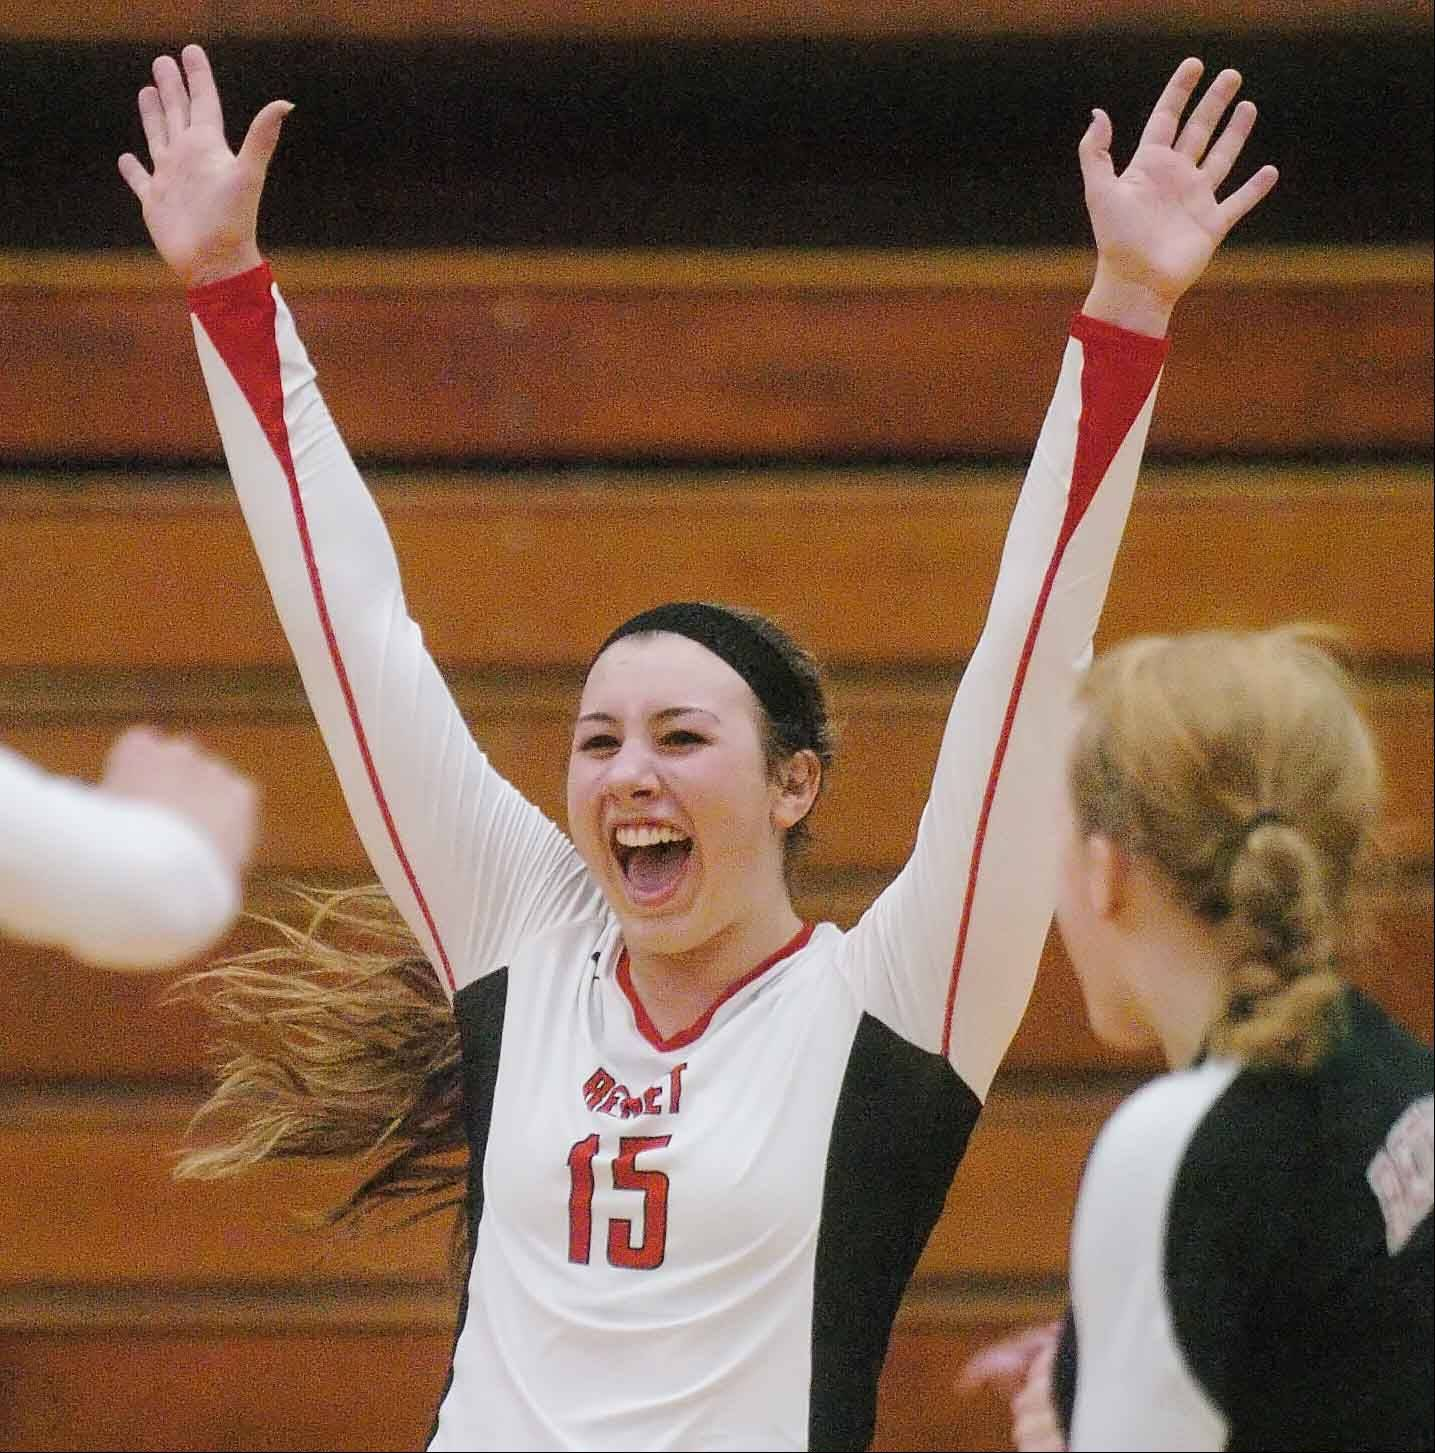 Hannah Kaminsky of Benet reacts to a score. This took place during the Plainfield Central vs. Benet at West Aurora girls volleyball sectional final in Aurora Thursday.